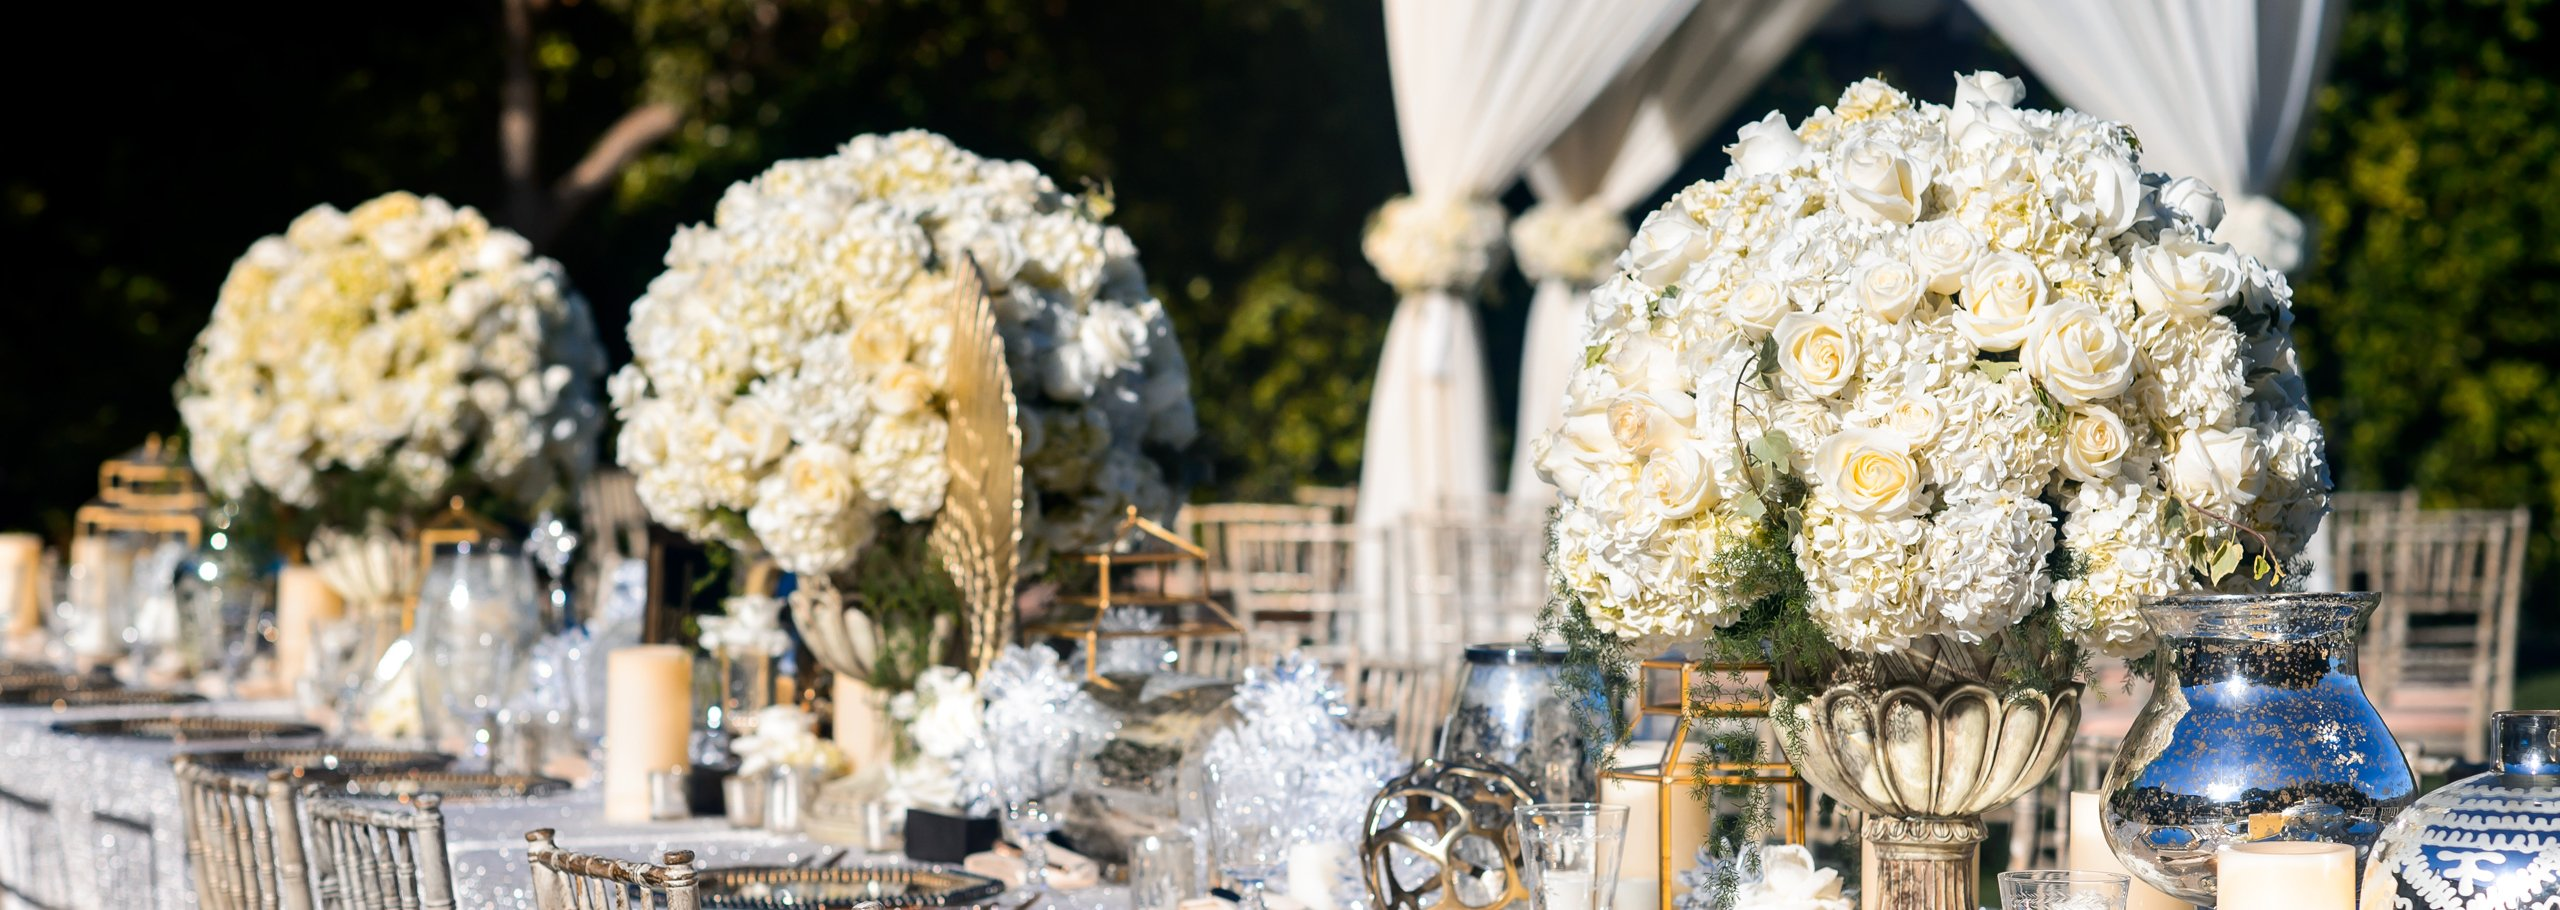 Diann Valentine Weddings and Interior Design